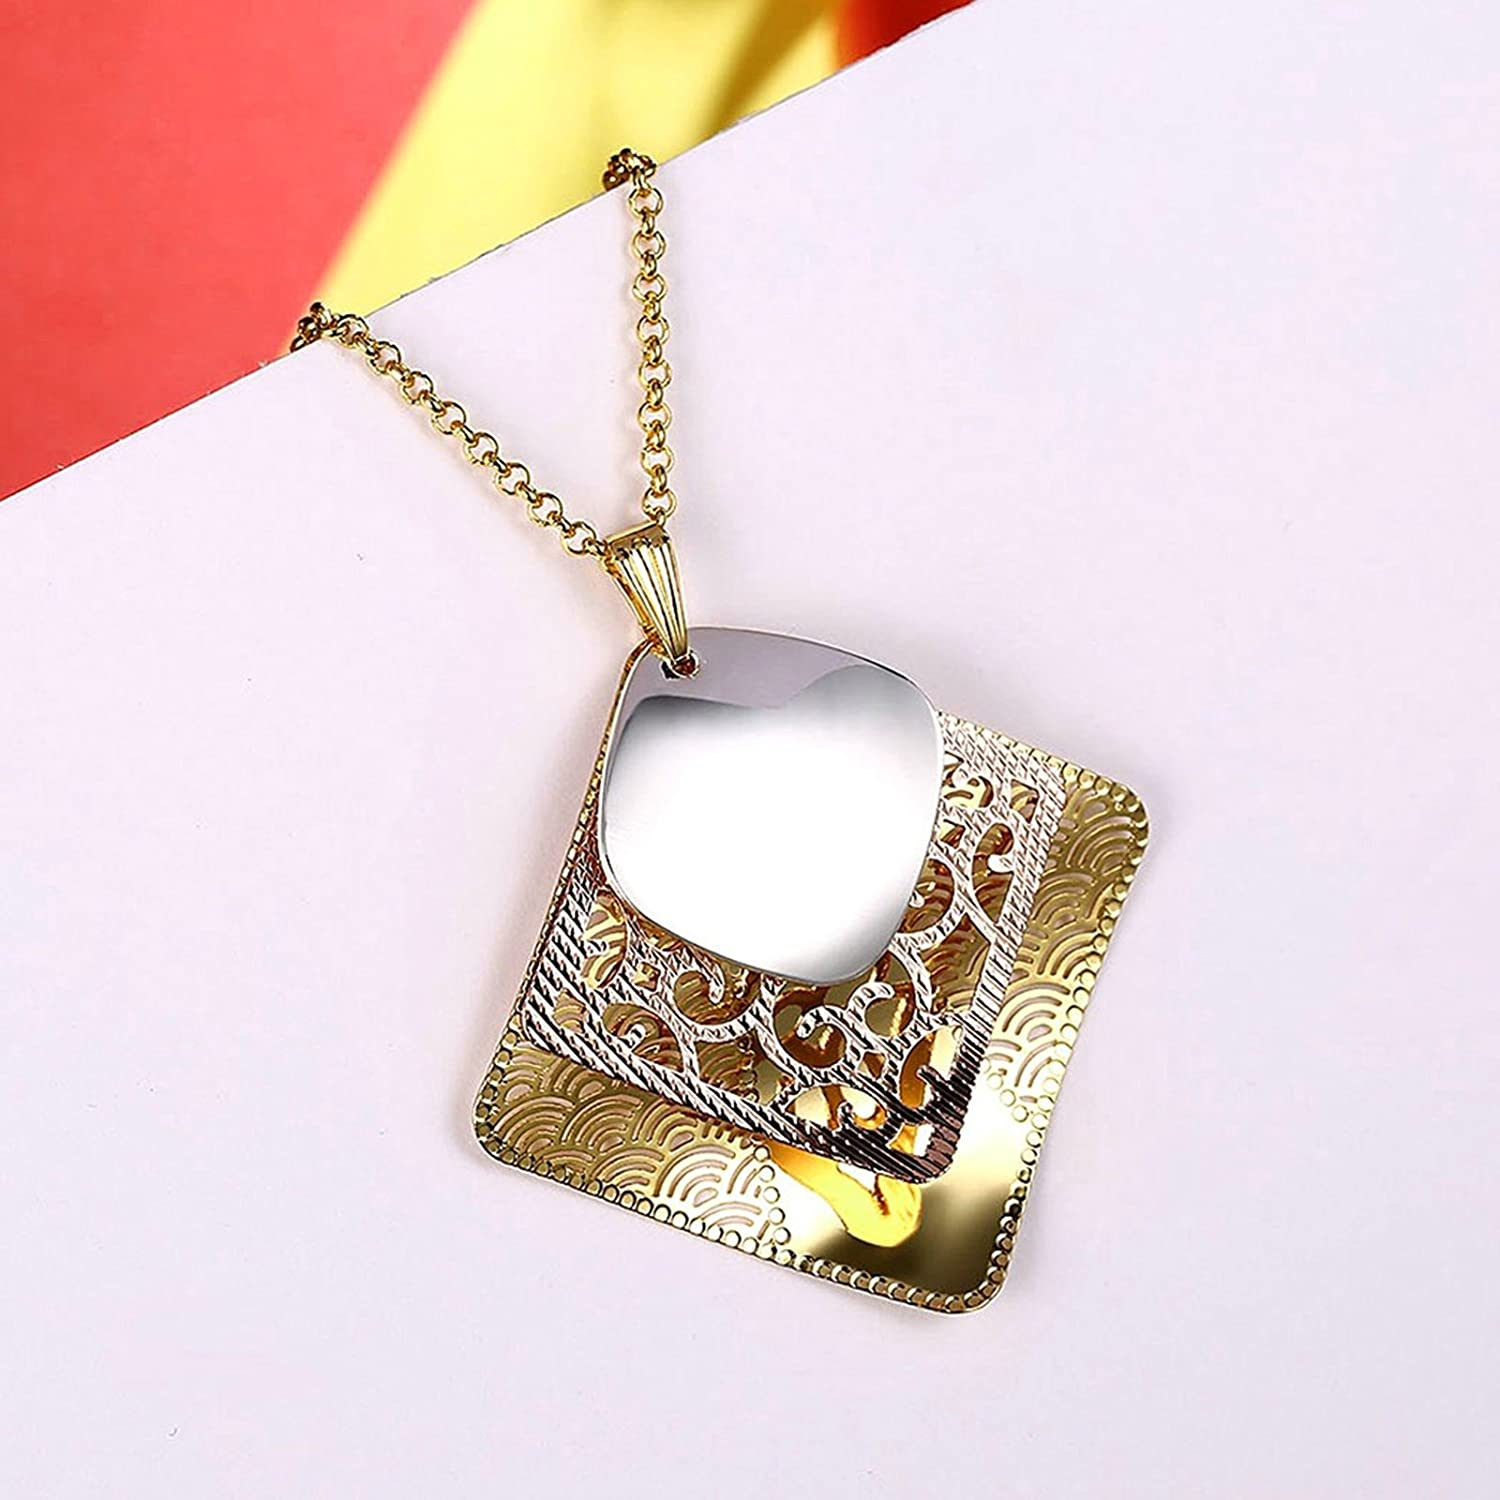 Gnzoe Jewelry Women Stainless Steel Necklace Square Welle Hollow Colorful Women Chain 46+6CM